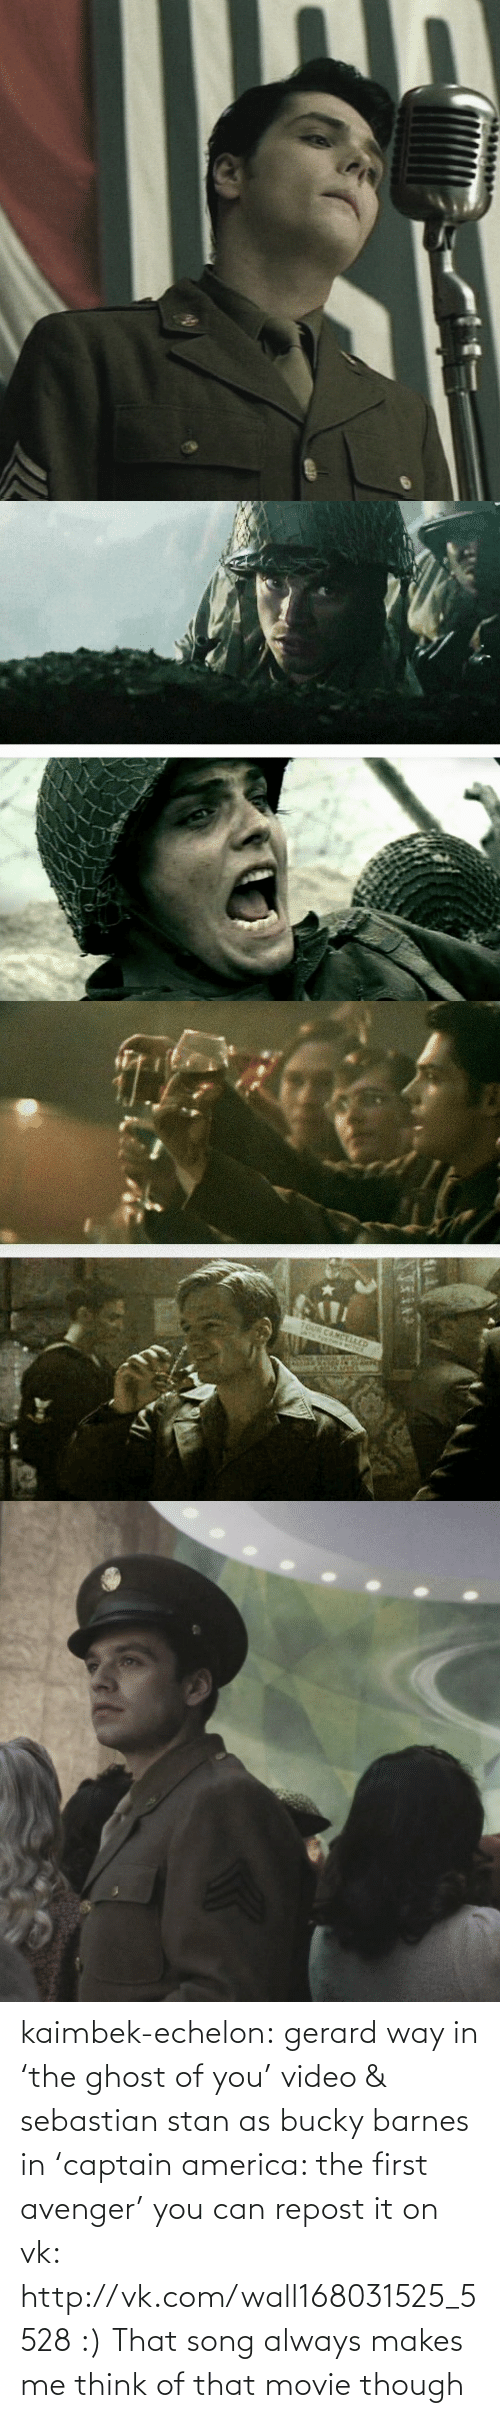 echelon: TOUR CANCELLED kaimbek-echelon:  gerard way in 'the ghost of you' video & sebastian stan as bucky barnes in 'captain america: the first avenger'     you can repost it on vk: http://vk.com/wall168031525_5528 :)  That song always makes me think of that movie though